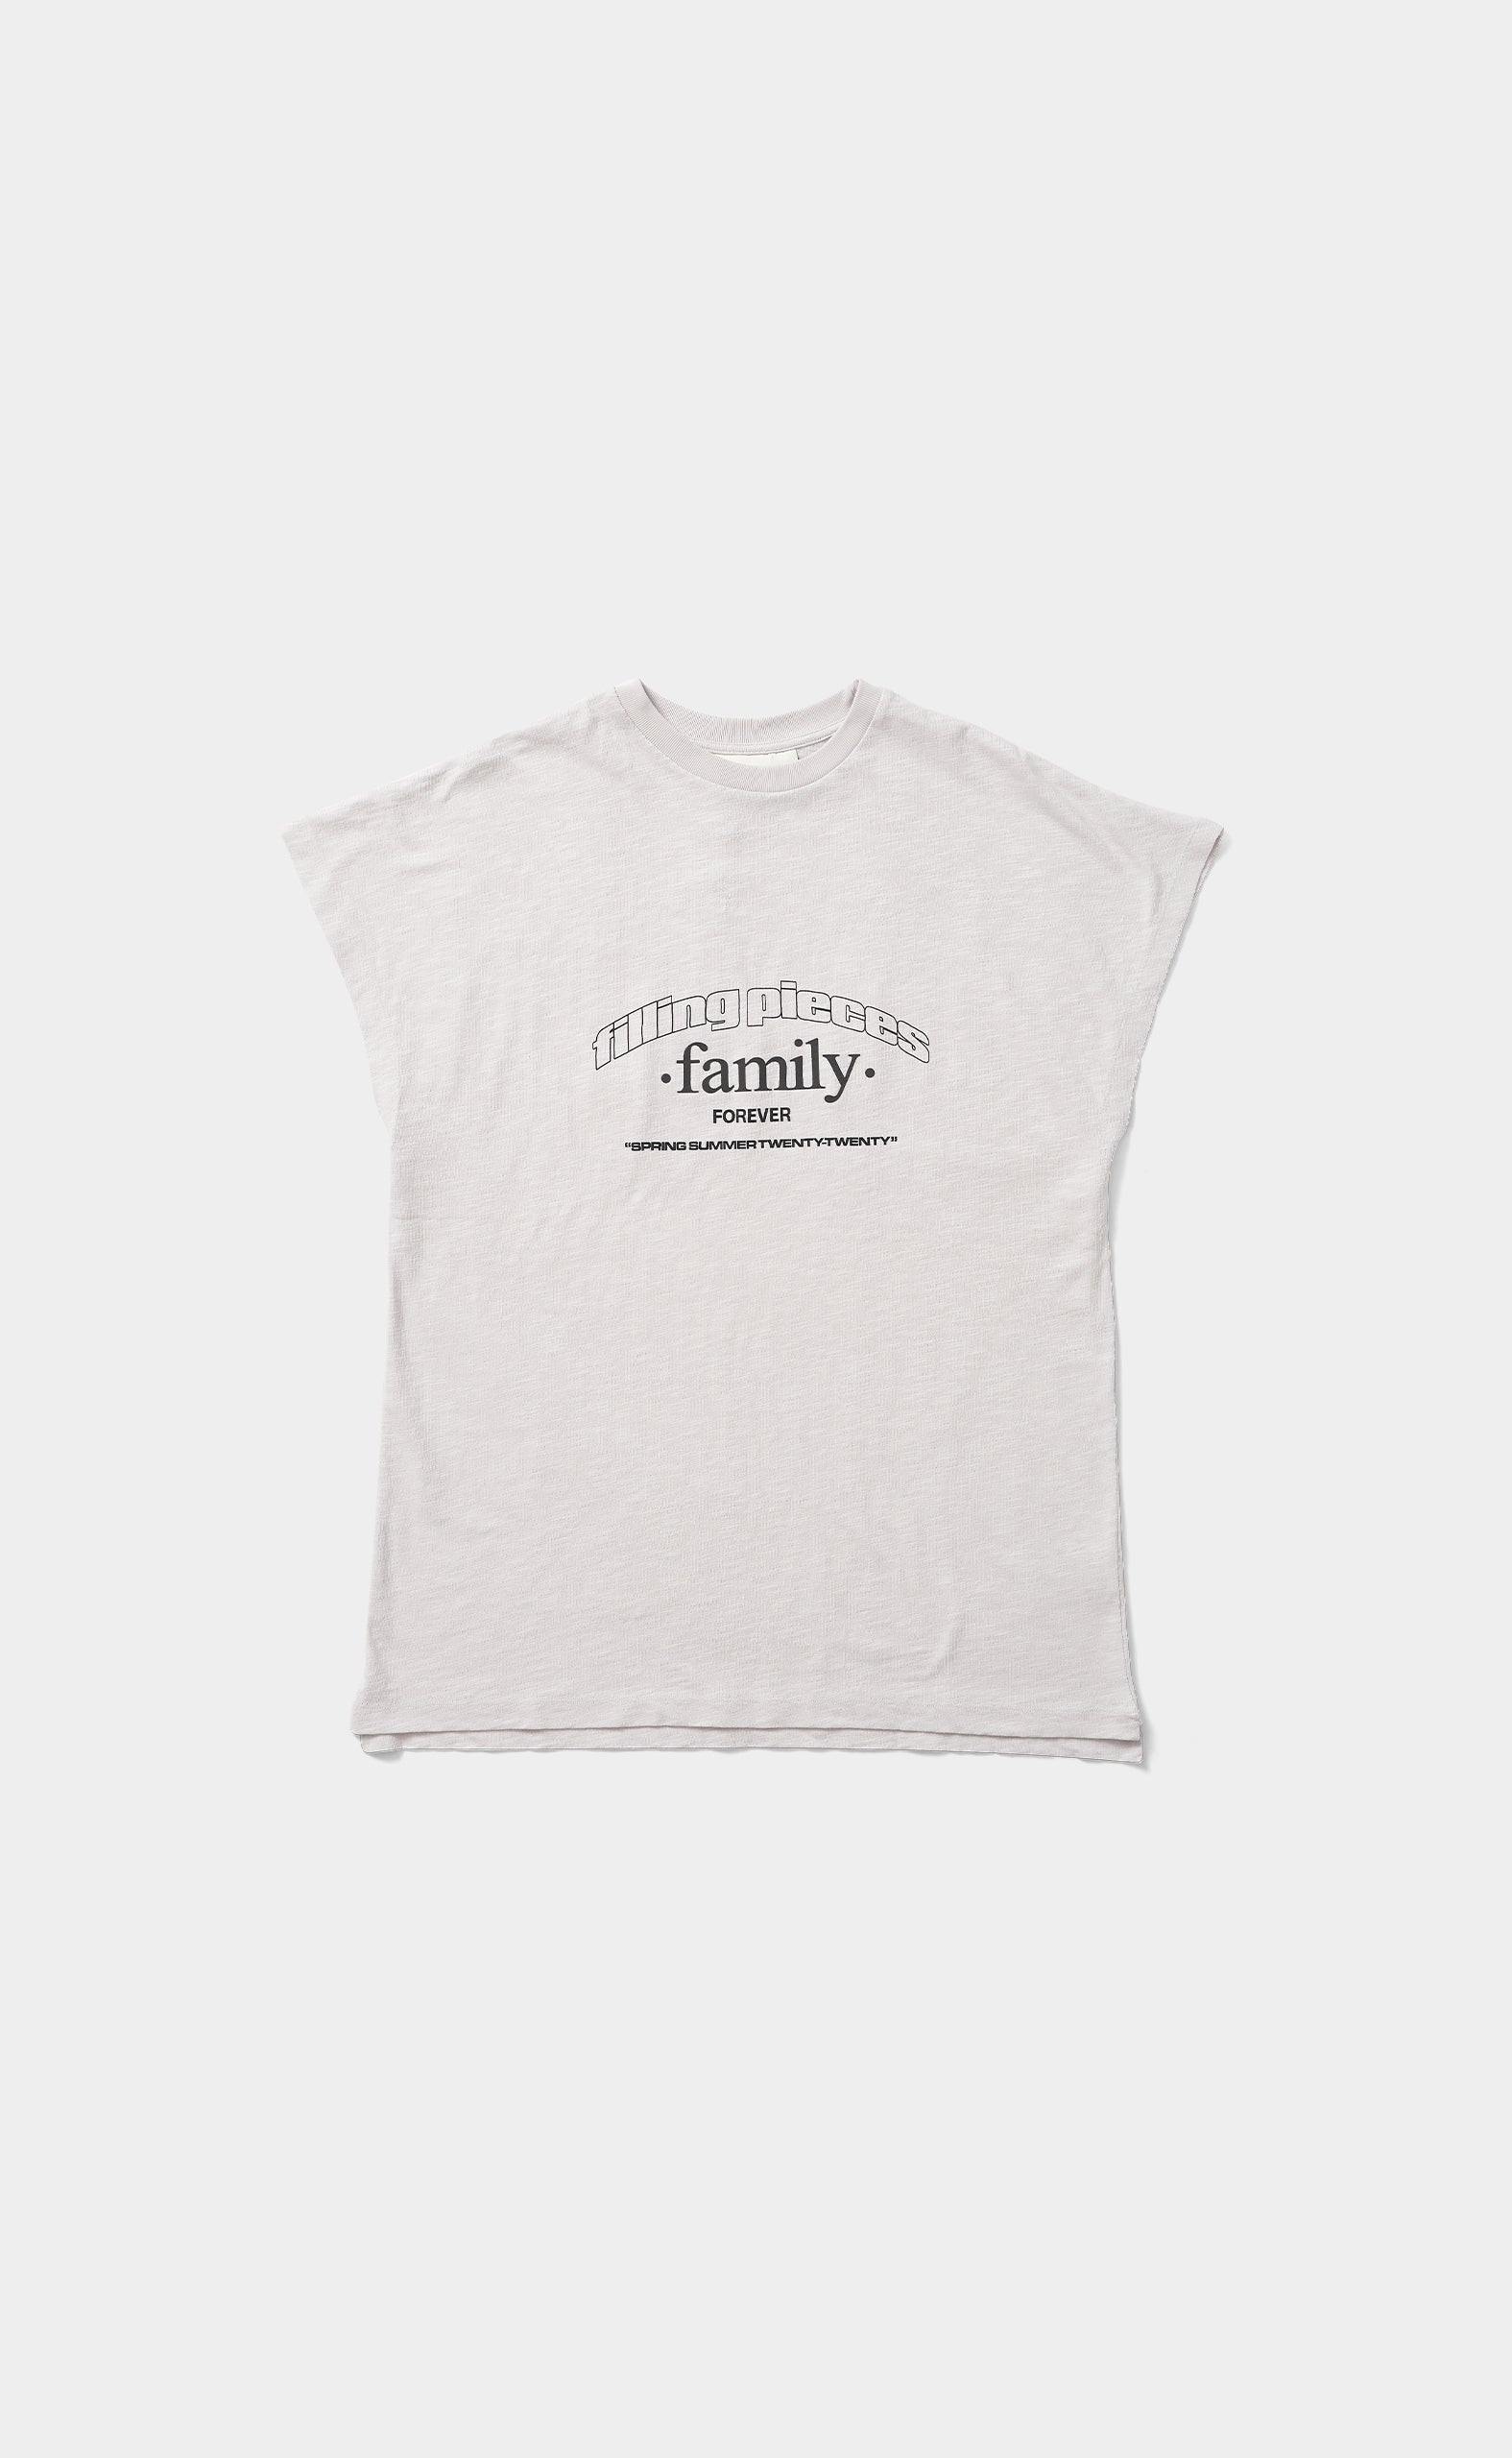 Graphic Sleeveless Tee FP Family Whitecap Grey - men